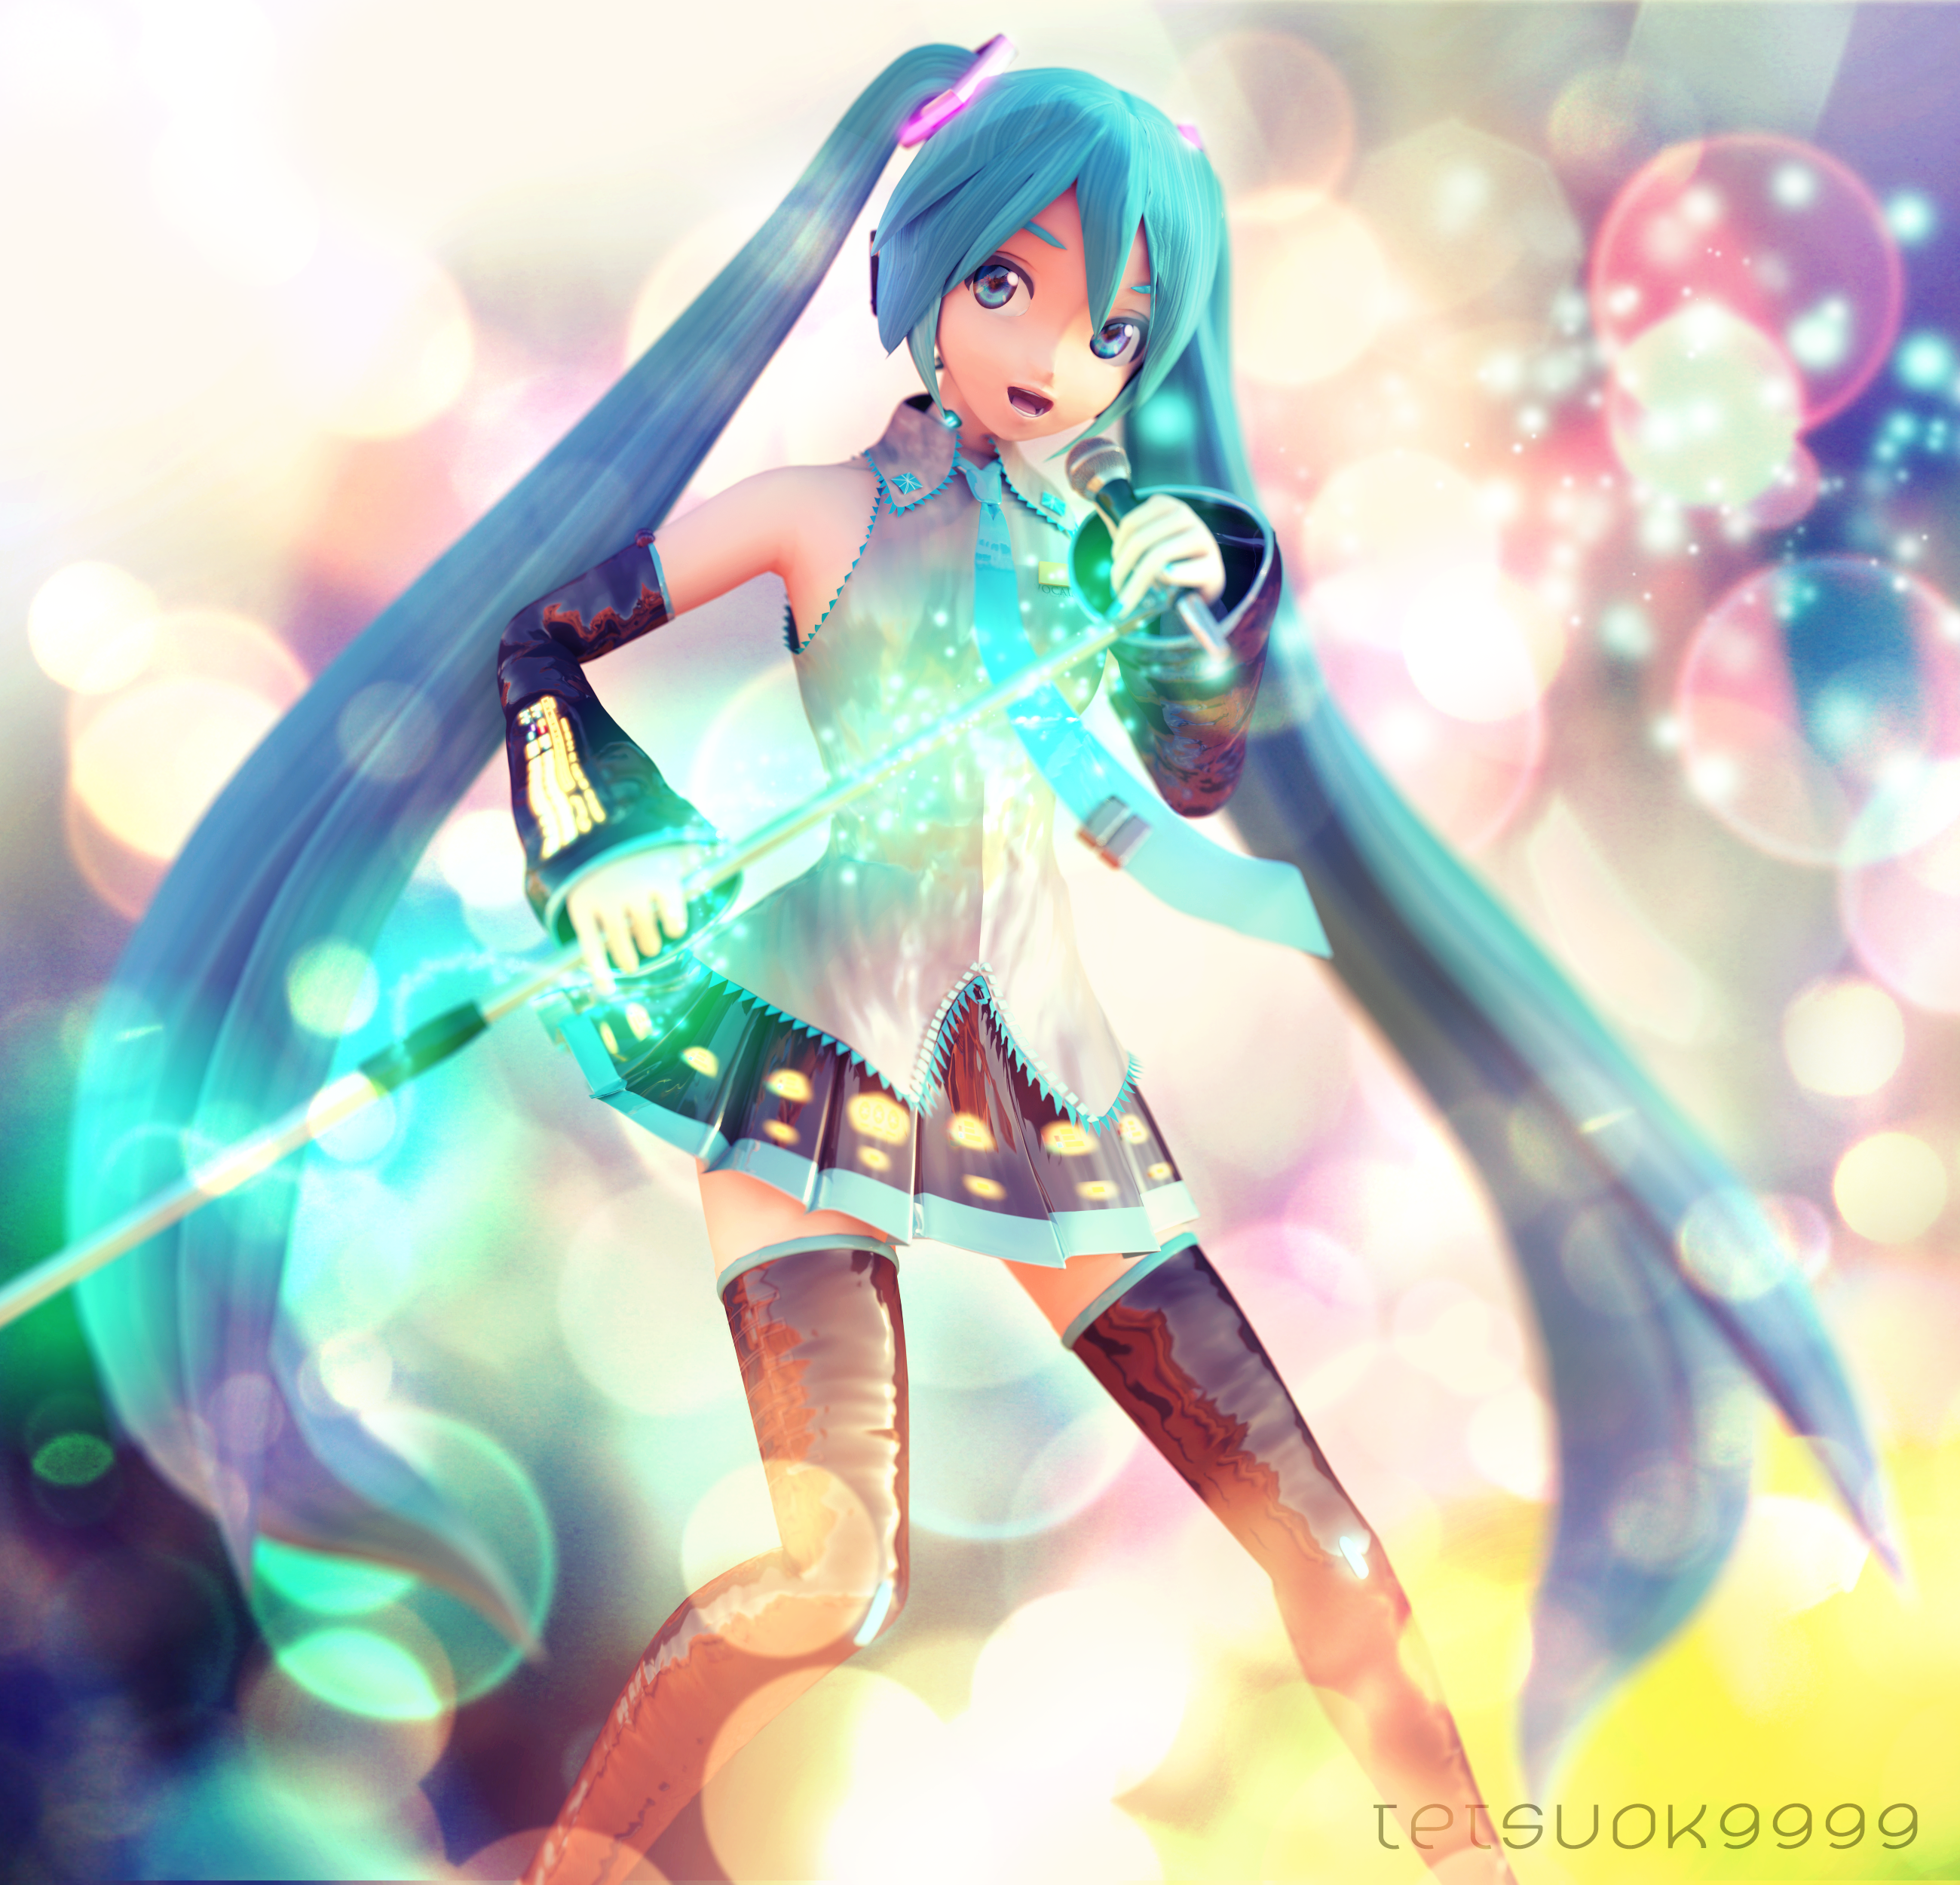 Project Diva Miku by tetsuok9999